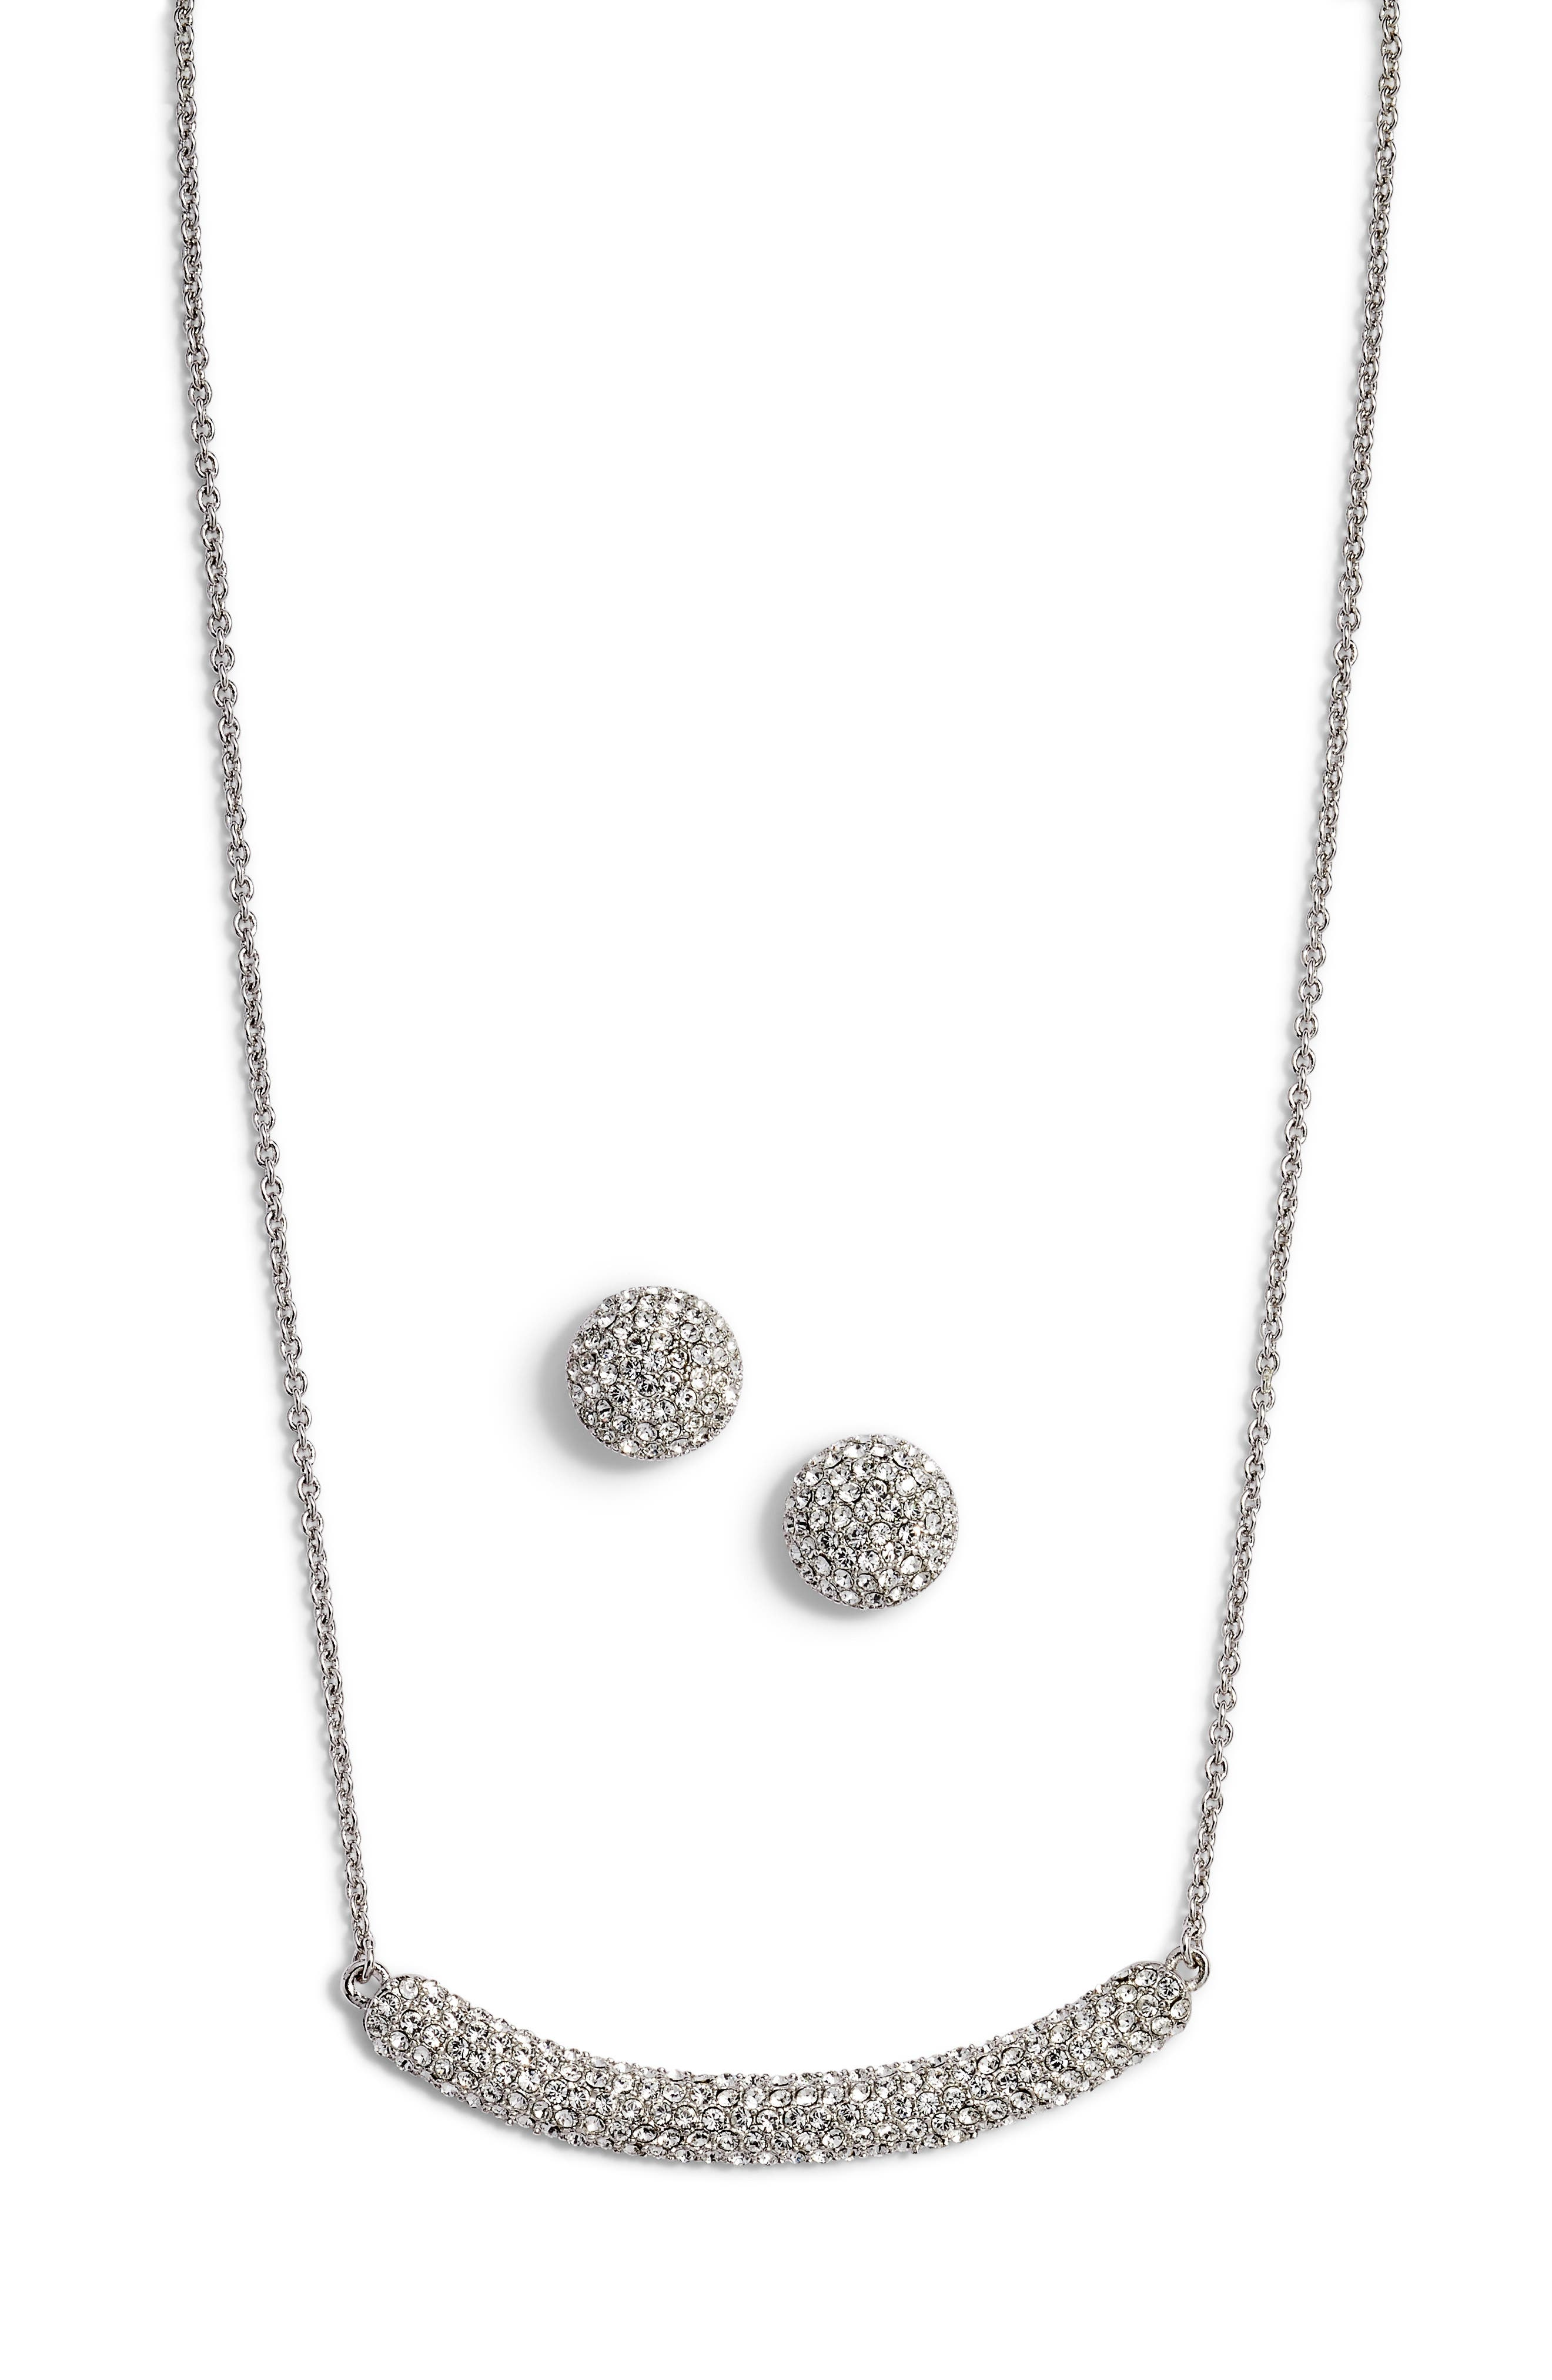 Pavé Swarovski Crystal Necklace & Stud Earrings Set,                             Main thumbnail 1, color,                             WHITE/ SILVER